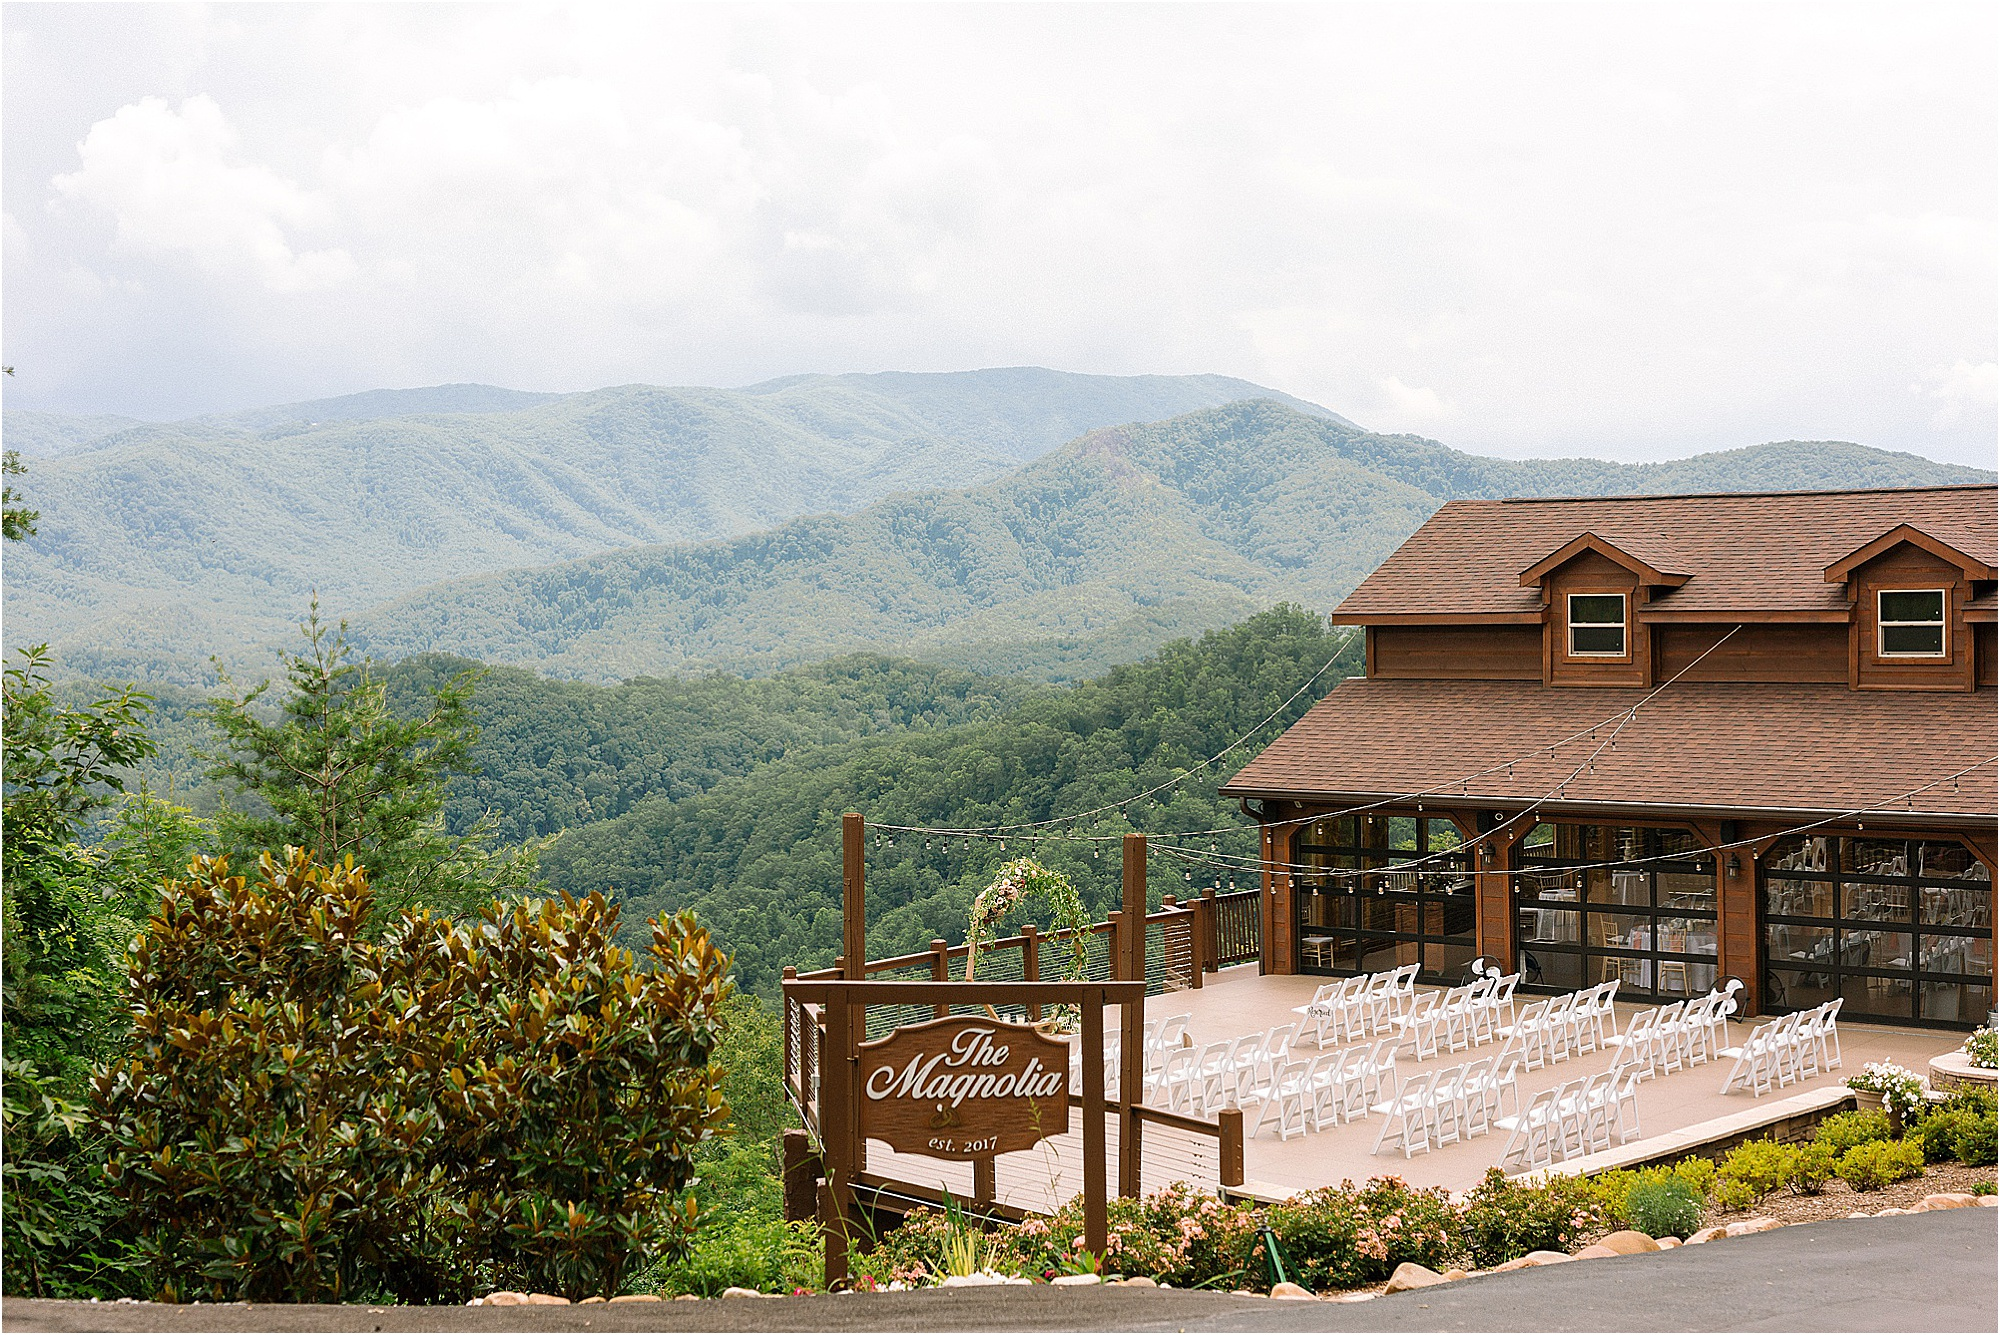 The Magnolia Wedding Venue in Pigeon Forge, Tennessee